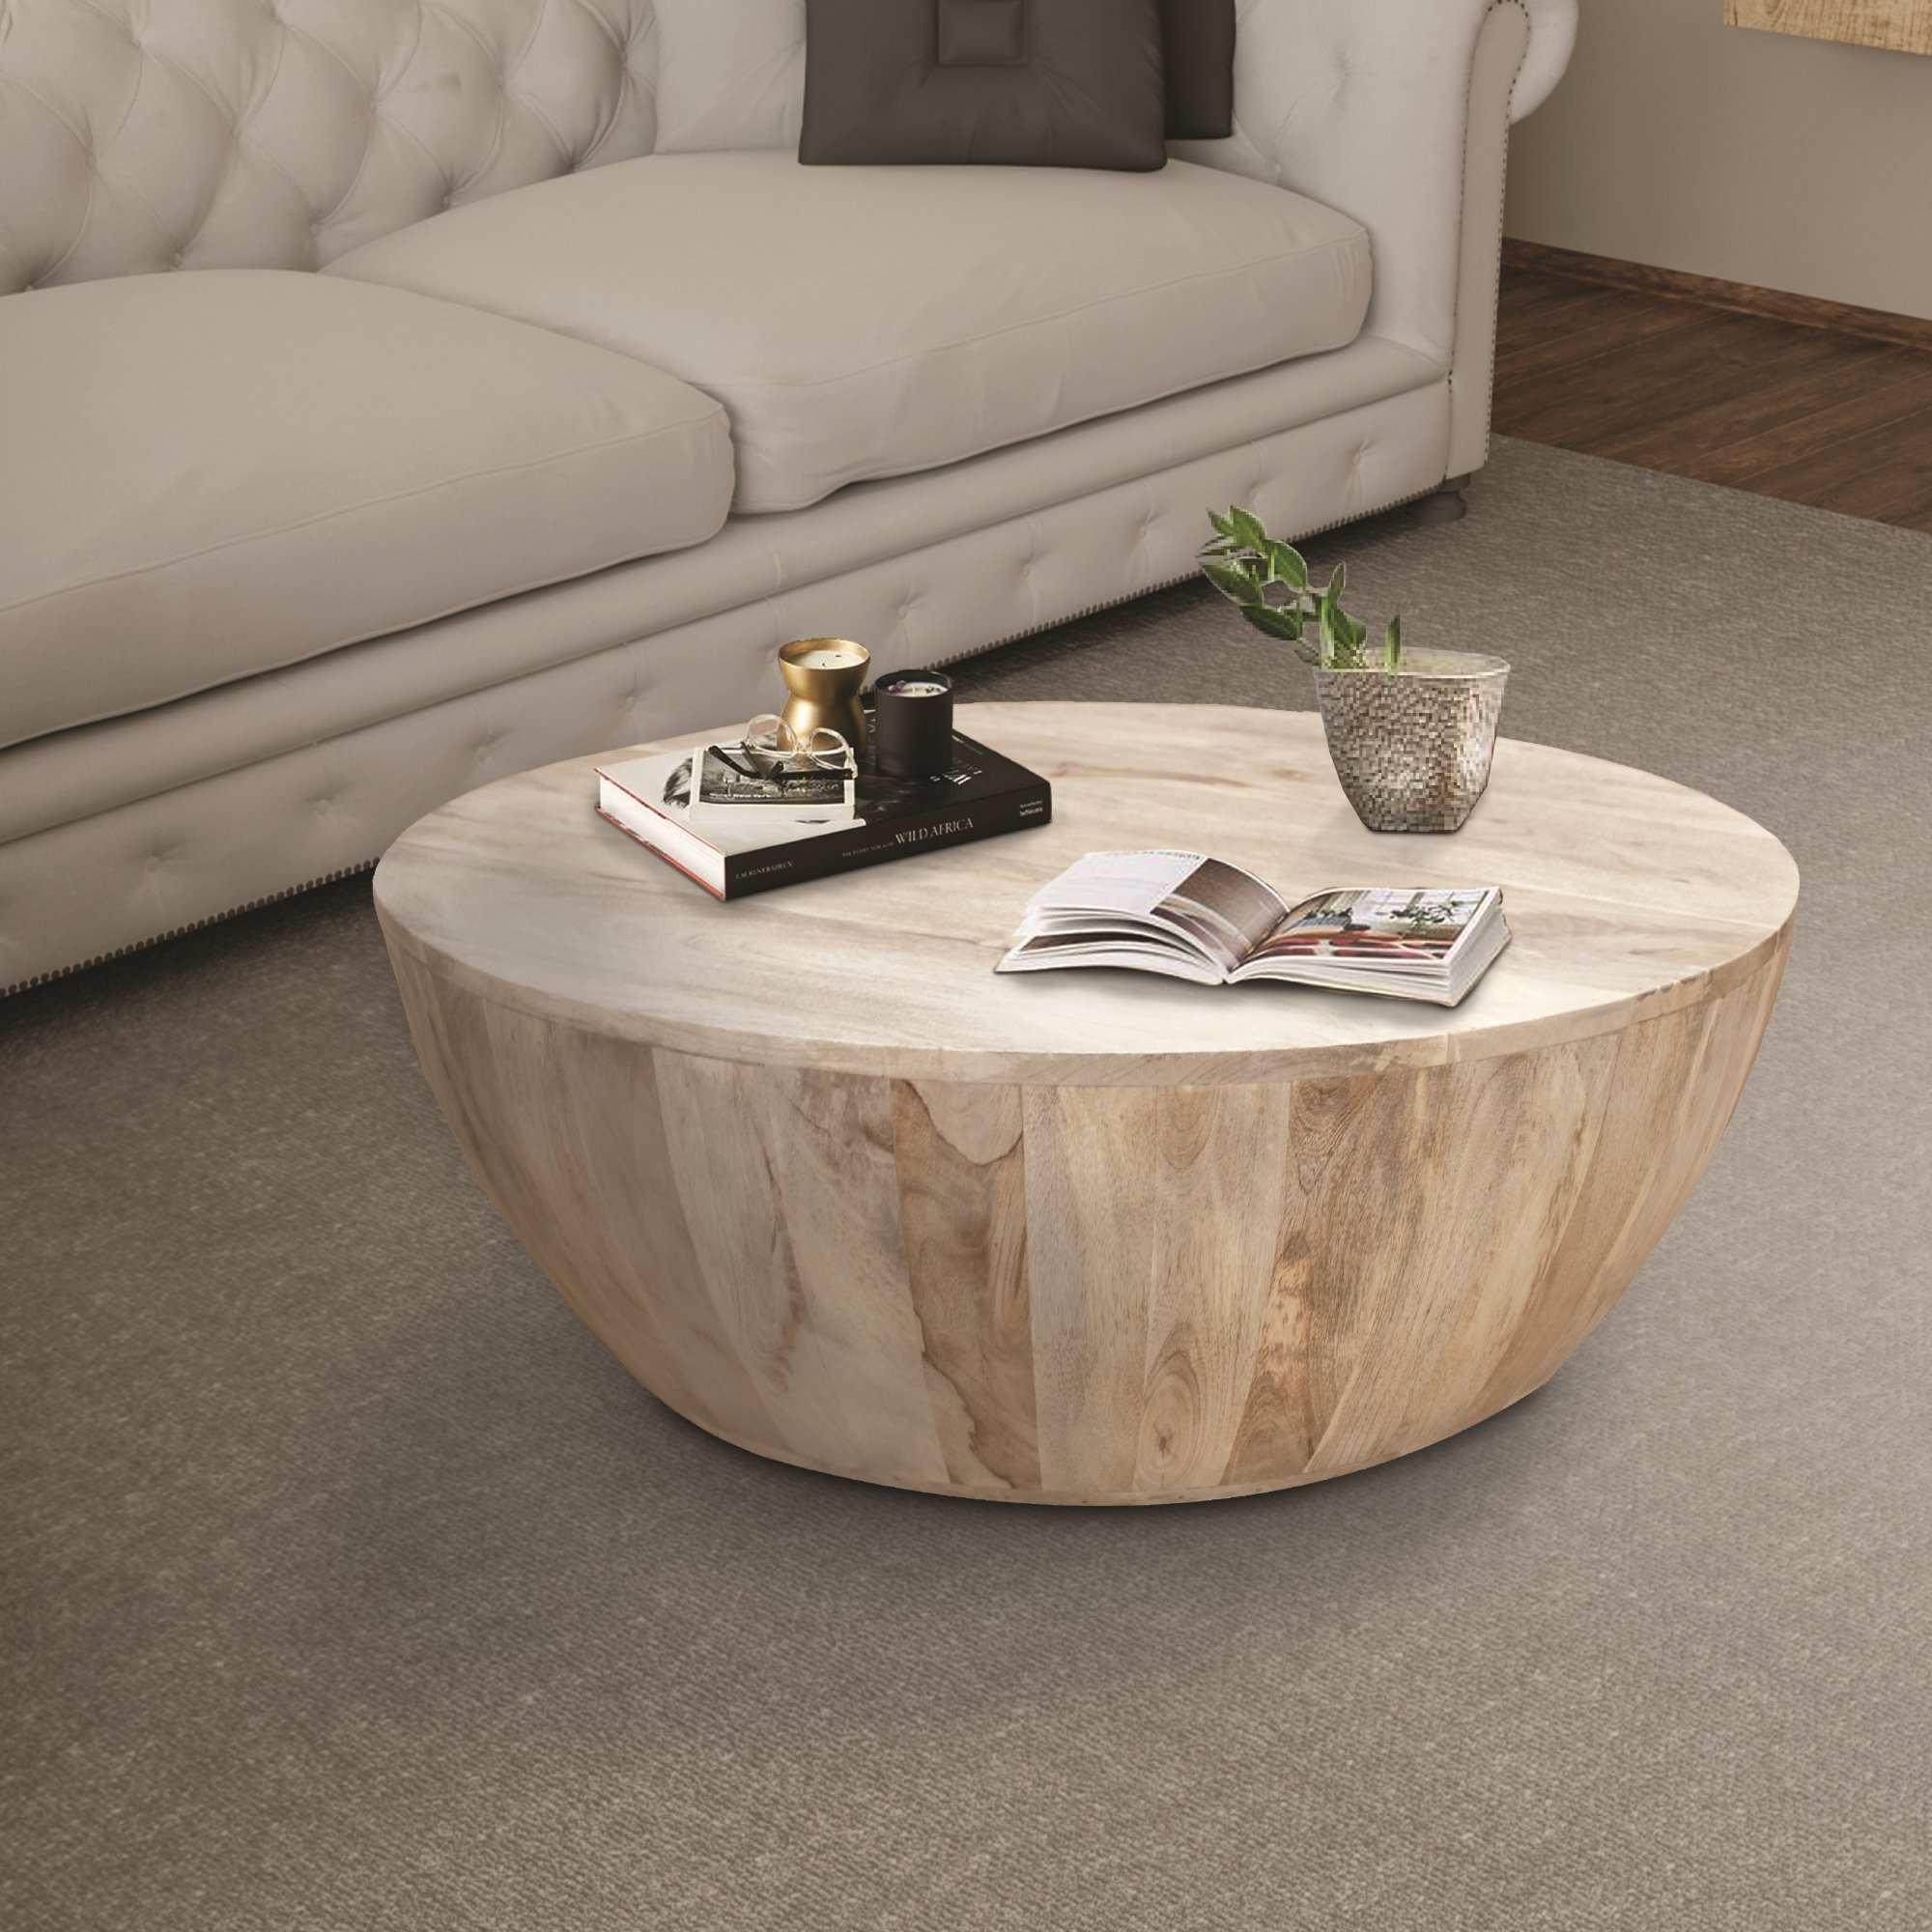 Distressed Mango Wood Coffee Table In Round Shape Washed Light Brown By The Urban Port Mango Wood Coffee Table Round Wood Coffee Table Coffee Table Wood [ 2000 x 2000 Pixel ]